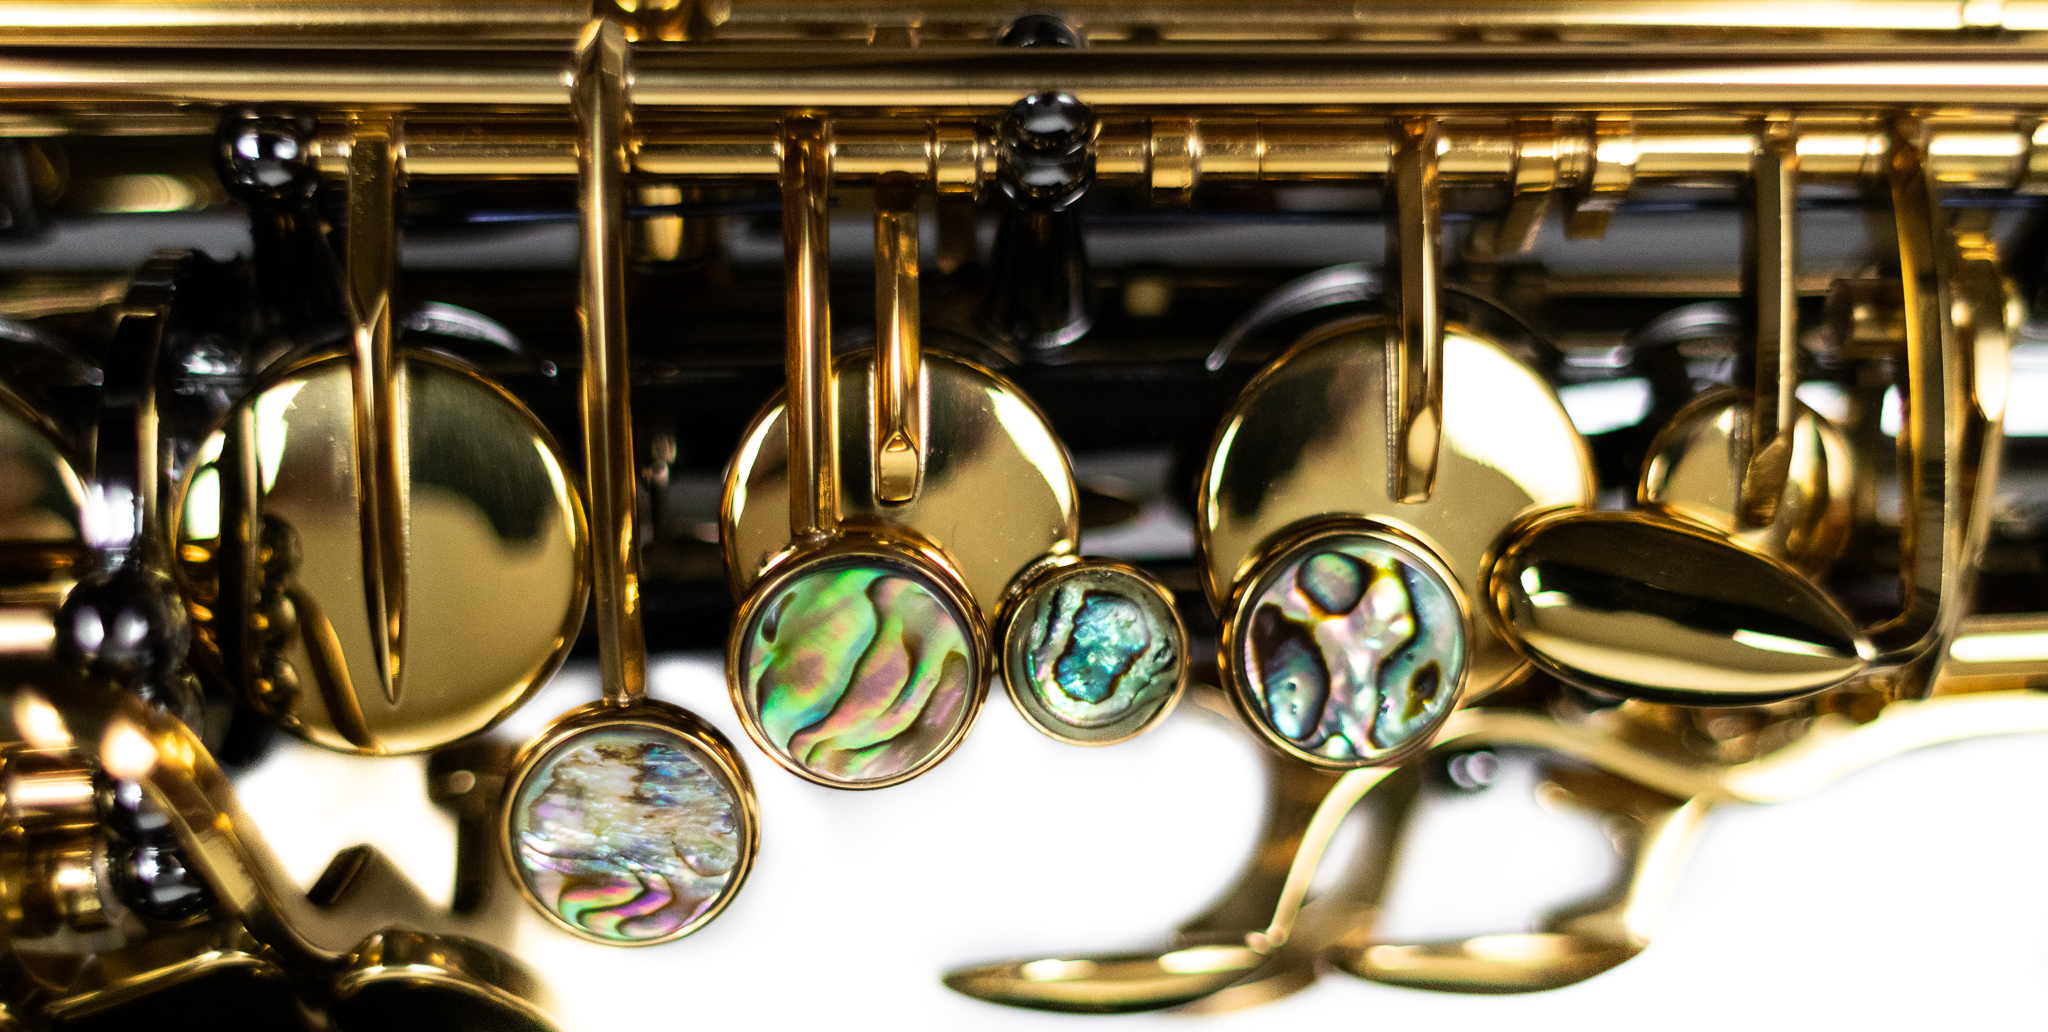 Buttons on a Saxophone